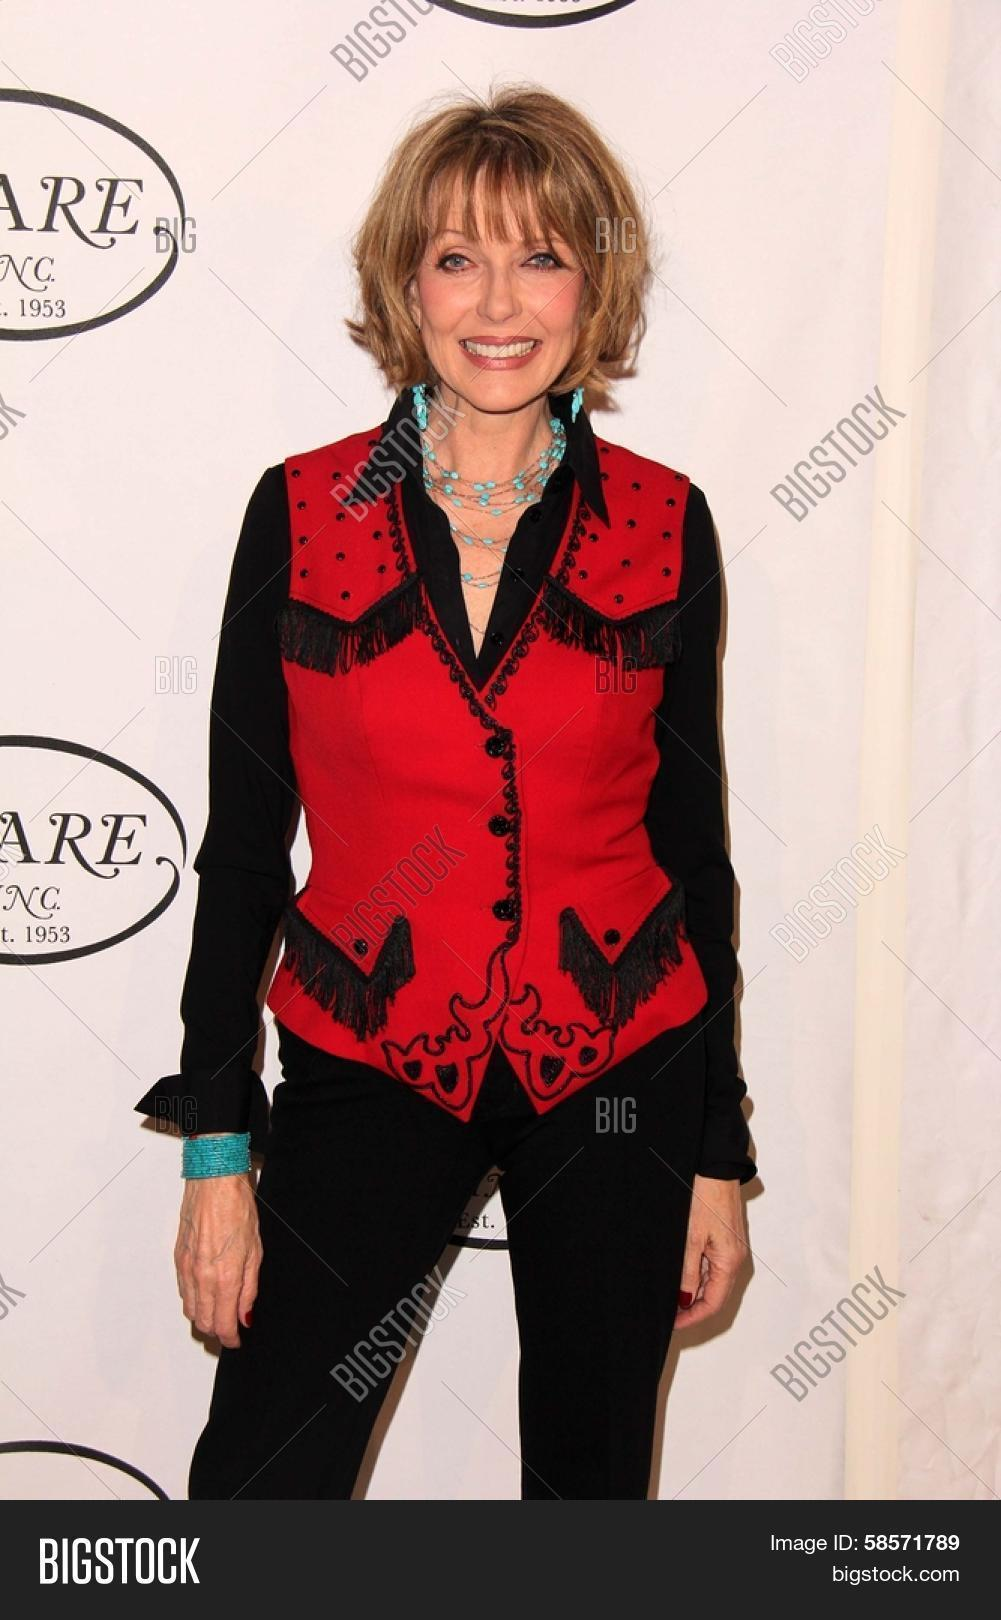 how old is susan blakely